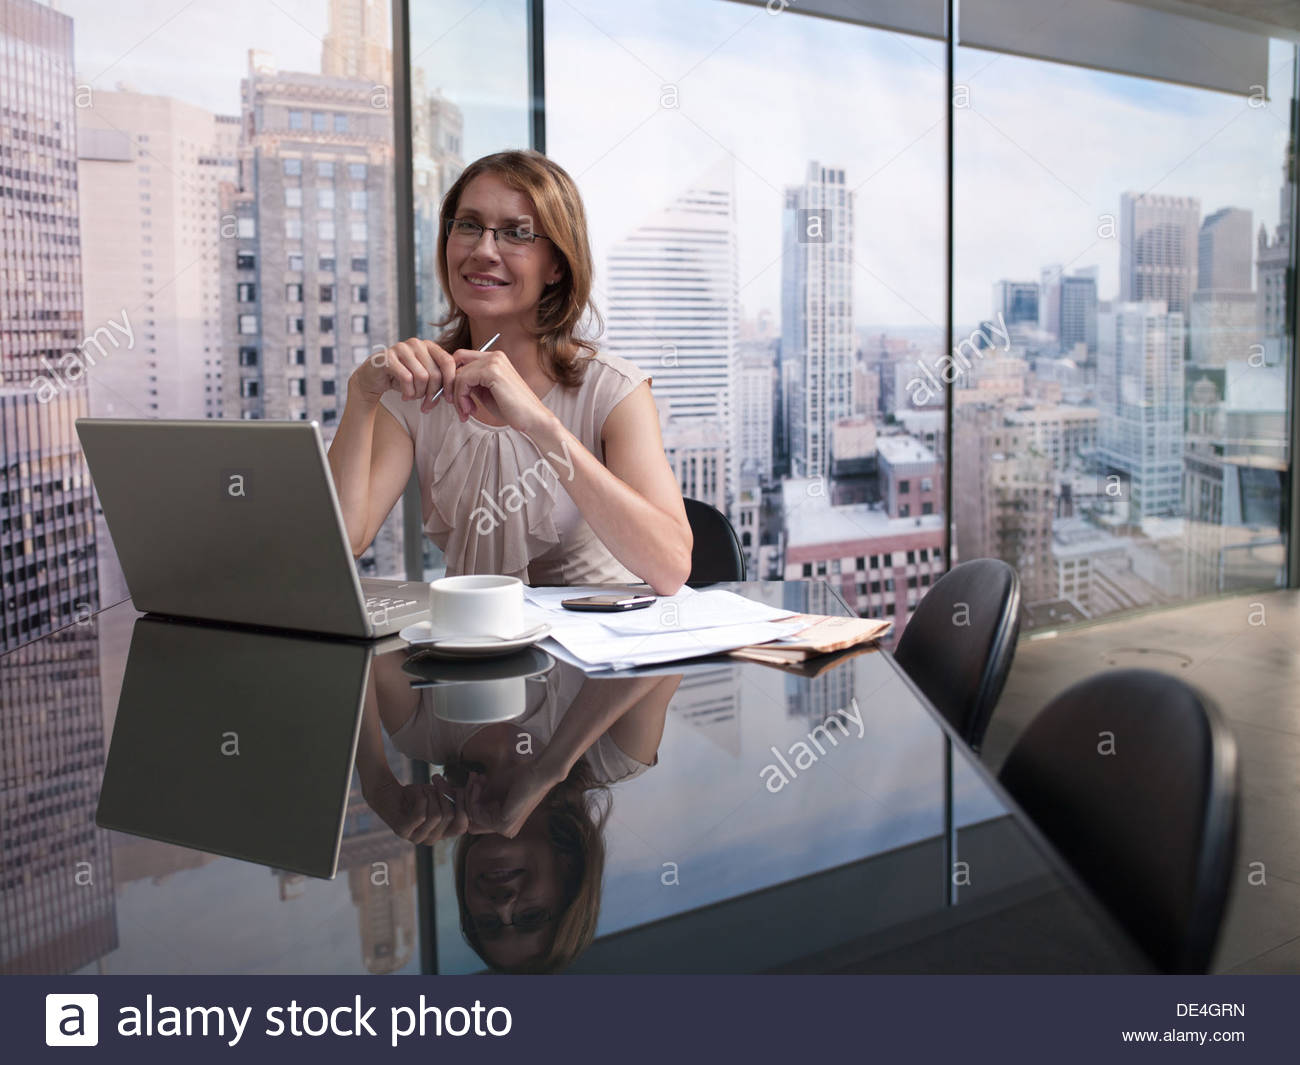 Woman working on computer with cityscape in background - Stock Image